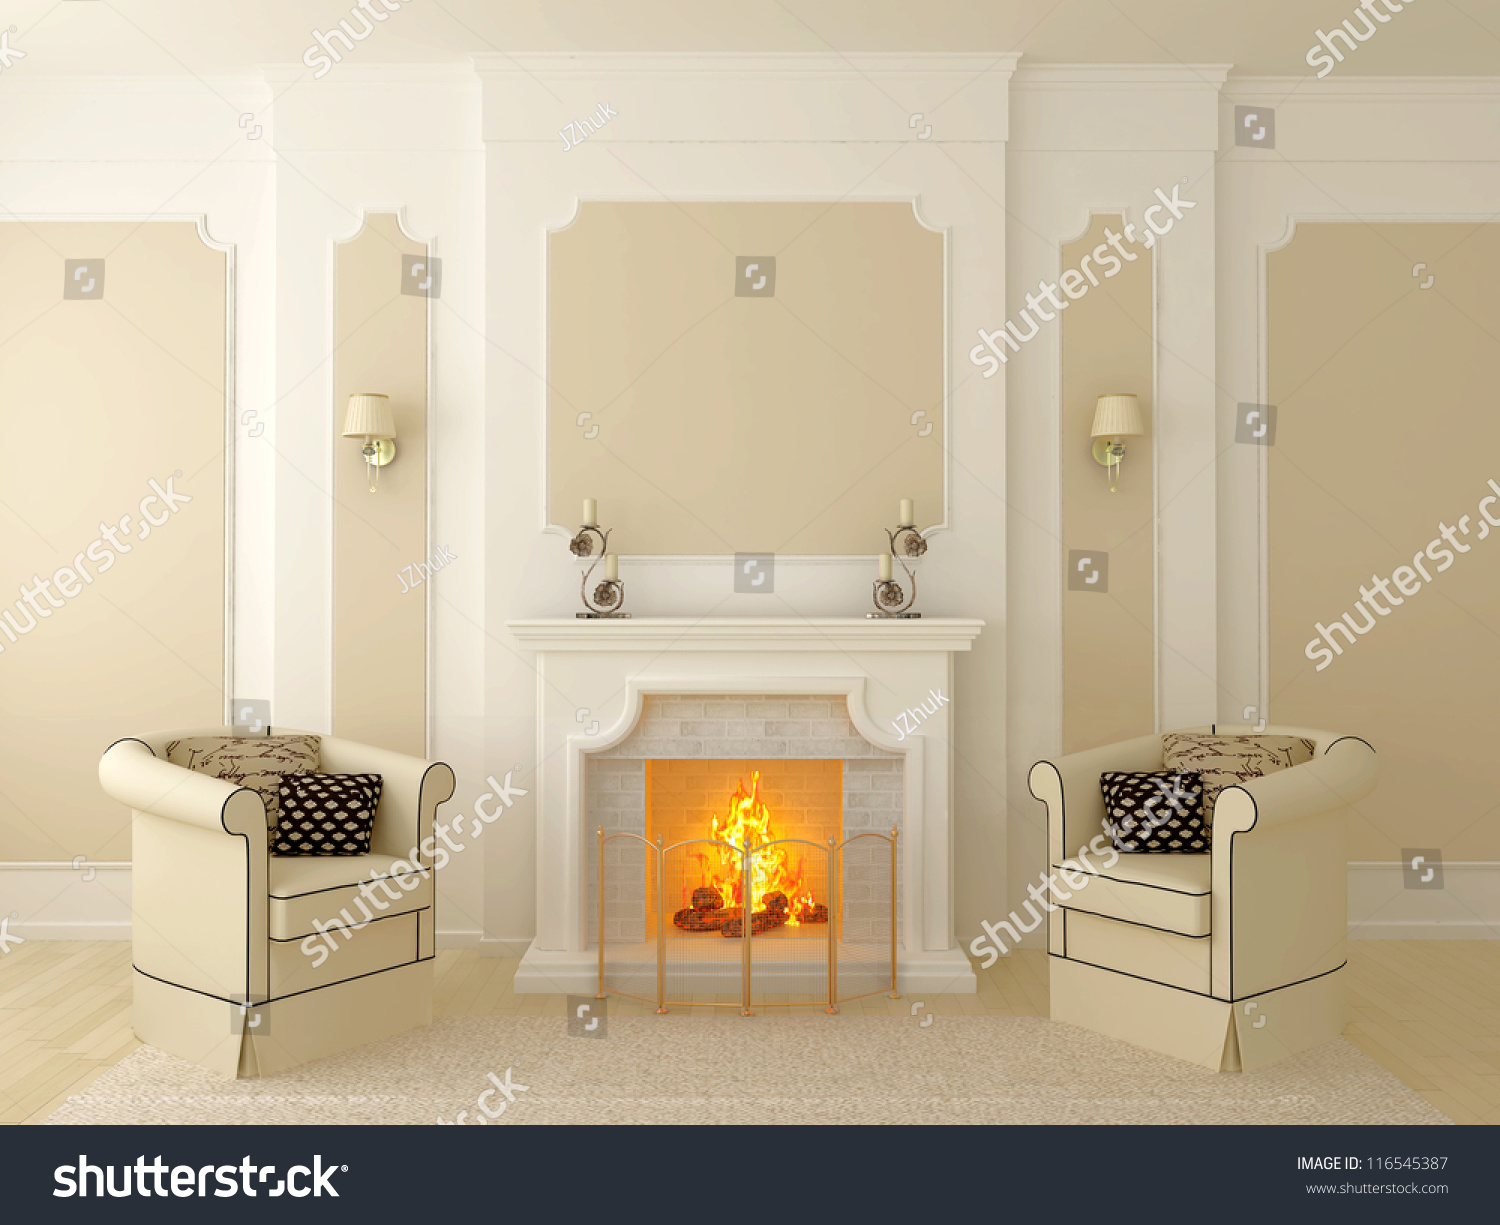 Classic Interior In Beige Tones The Central Part Of Which